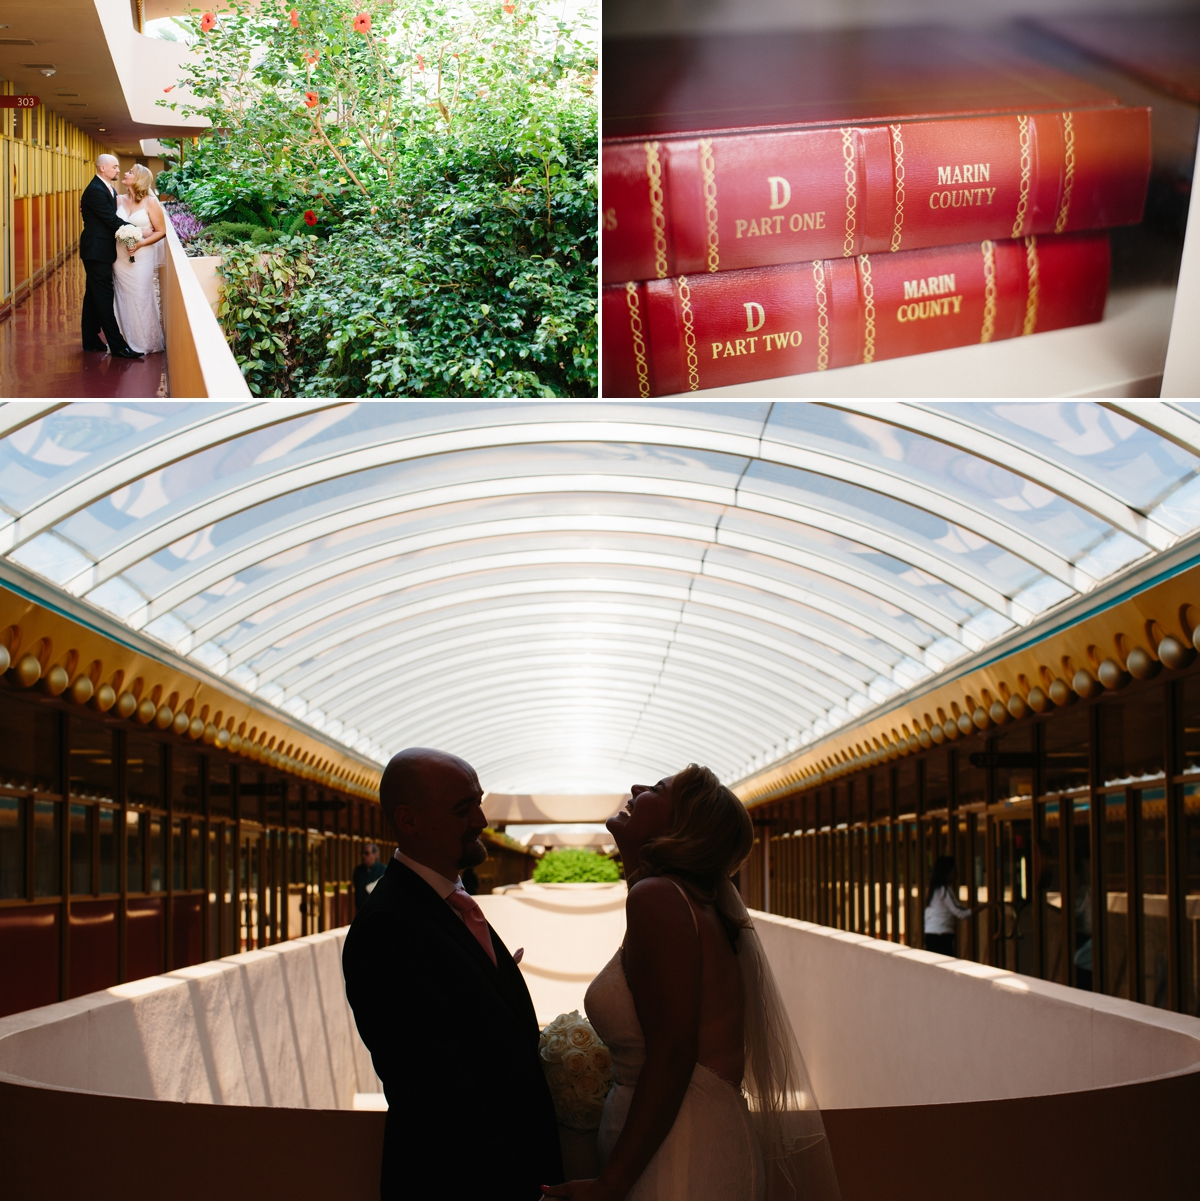 The skylights and greenery around the Marin Civic Center are such a beautiful backdrop for the newly married couple!